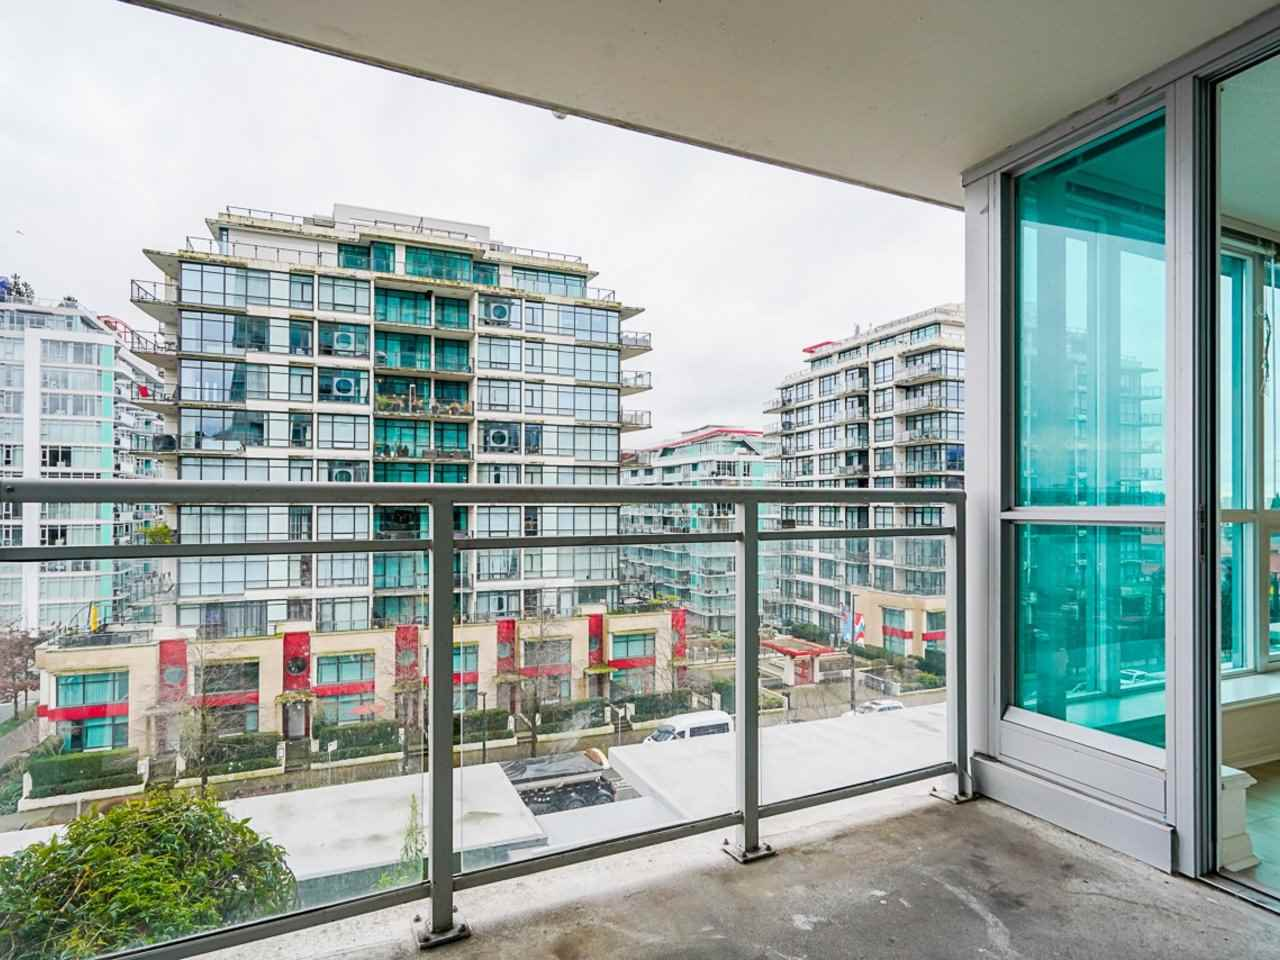 604 188 E ESPLANADE - Lower Lonsdale Apartment/Condo for sale, 2 Bedrooms (R2528391) - #28